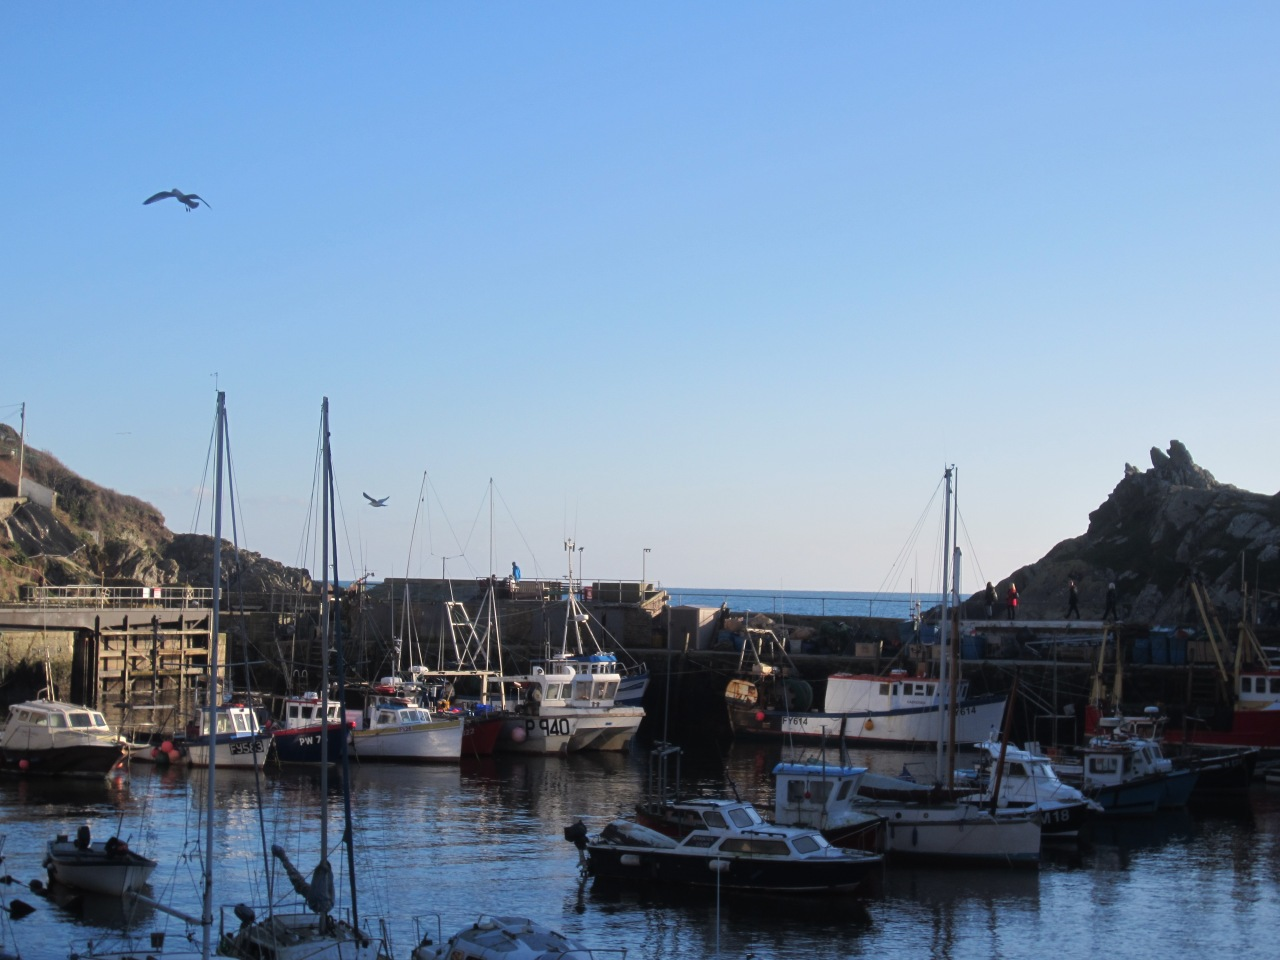 Cornish daytrips: Polperro